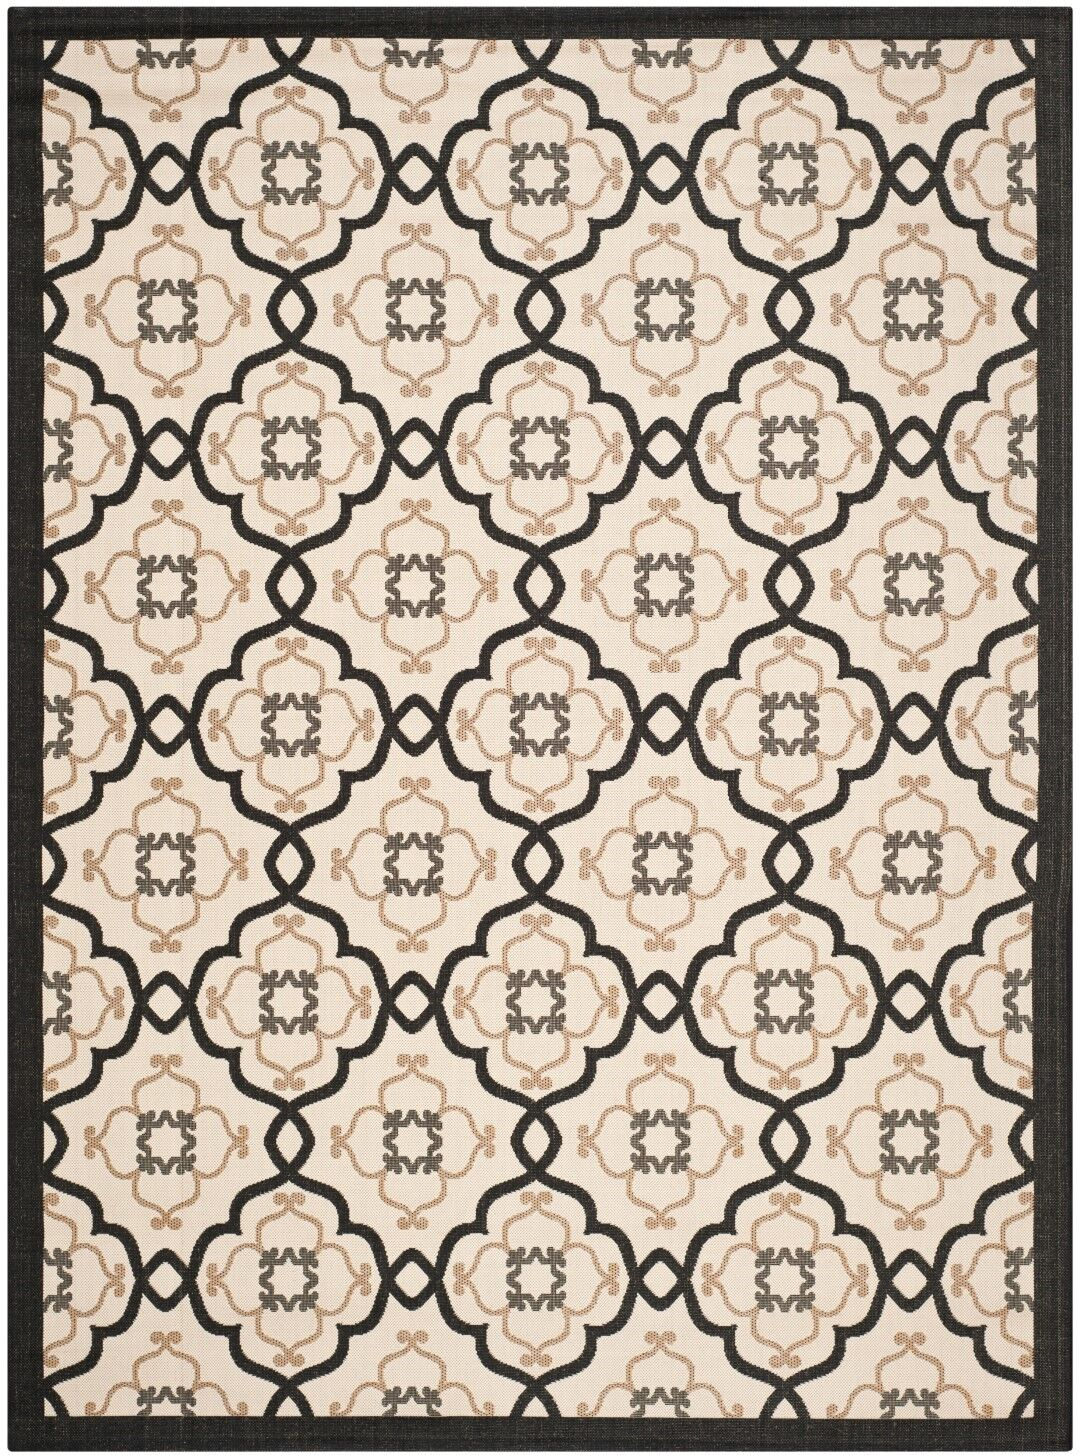 Martha Stewart Province Area Rug Rug Size: Rectangle 4' x 5'7